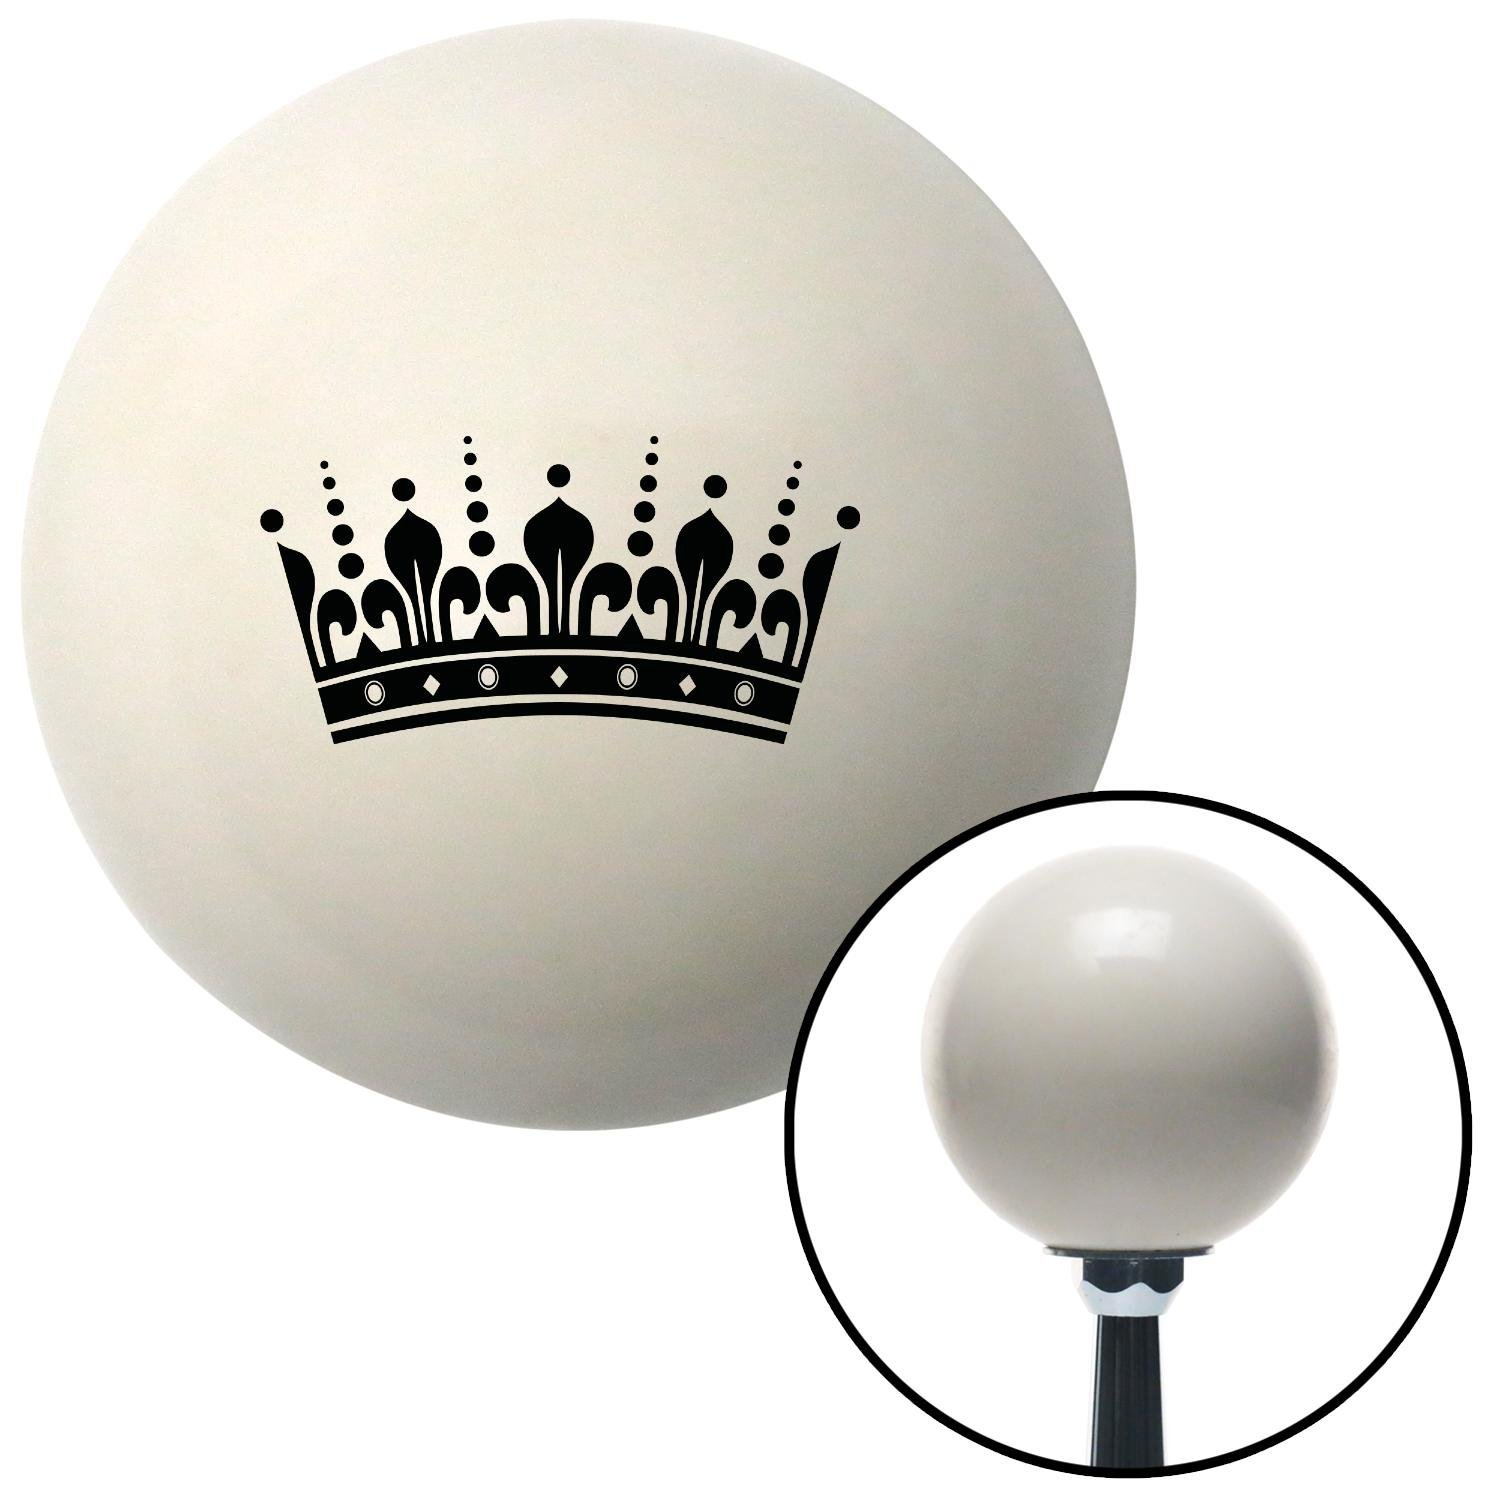 American Shifter 31154 Ivory Shift Knob with 16mm x 1.5 Insert Black Queens Crown